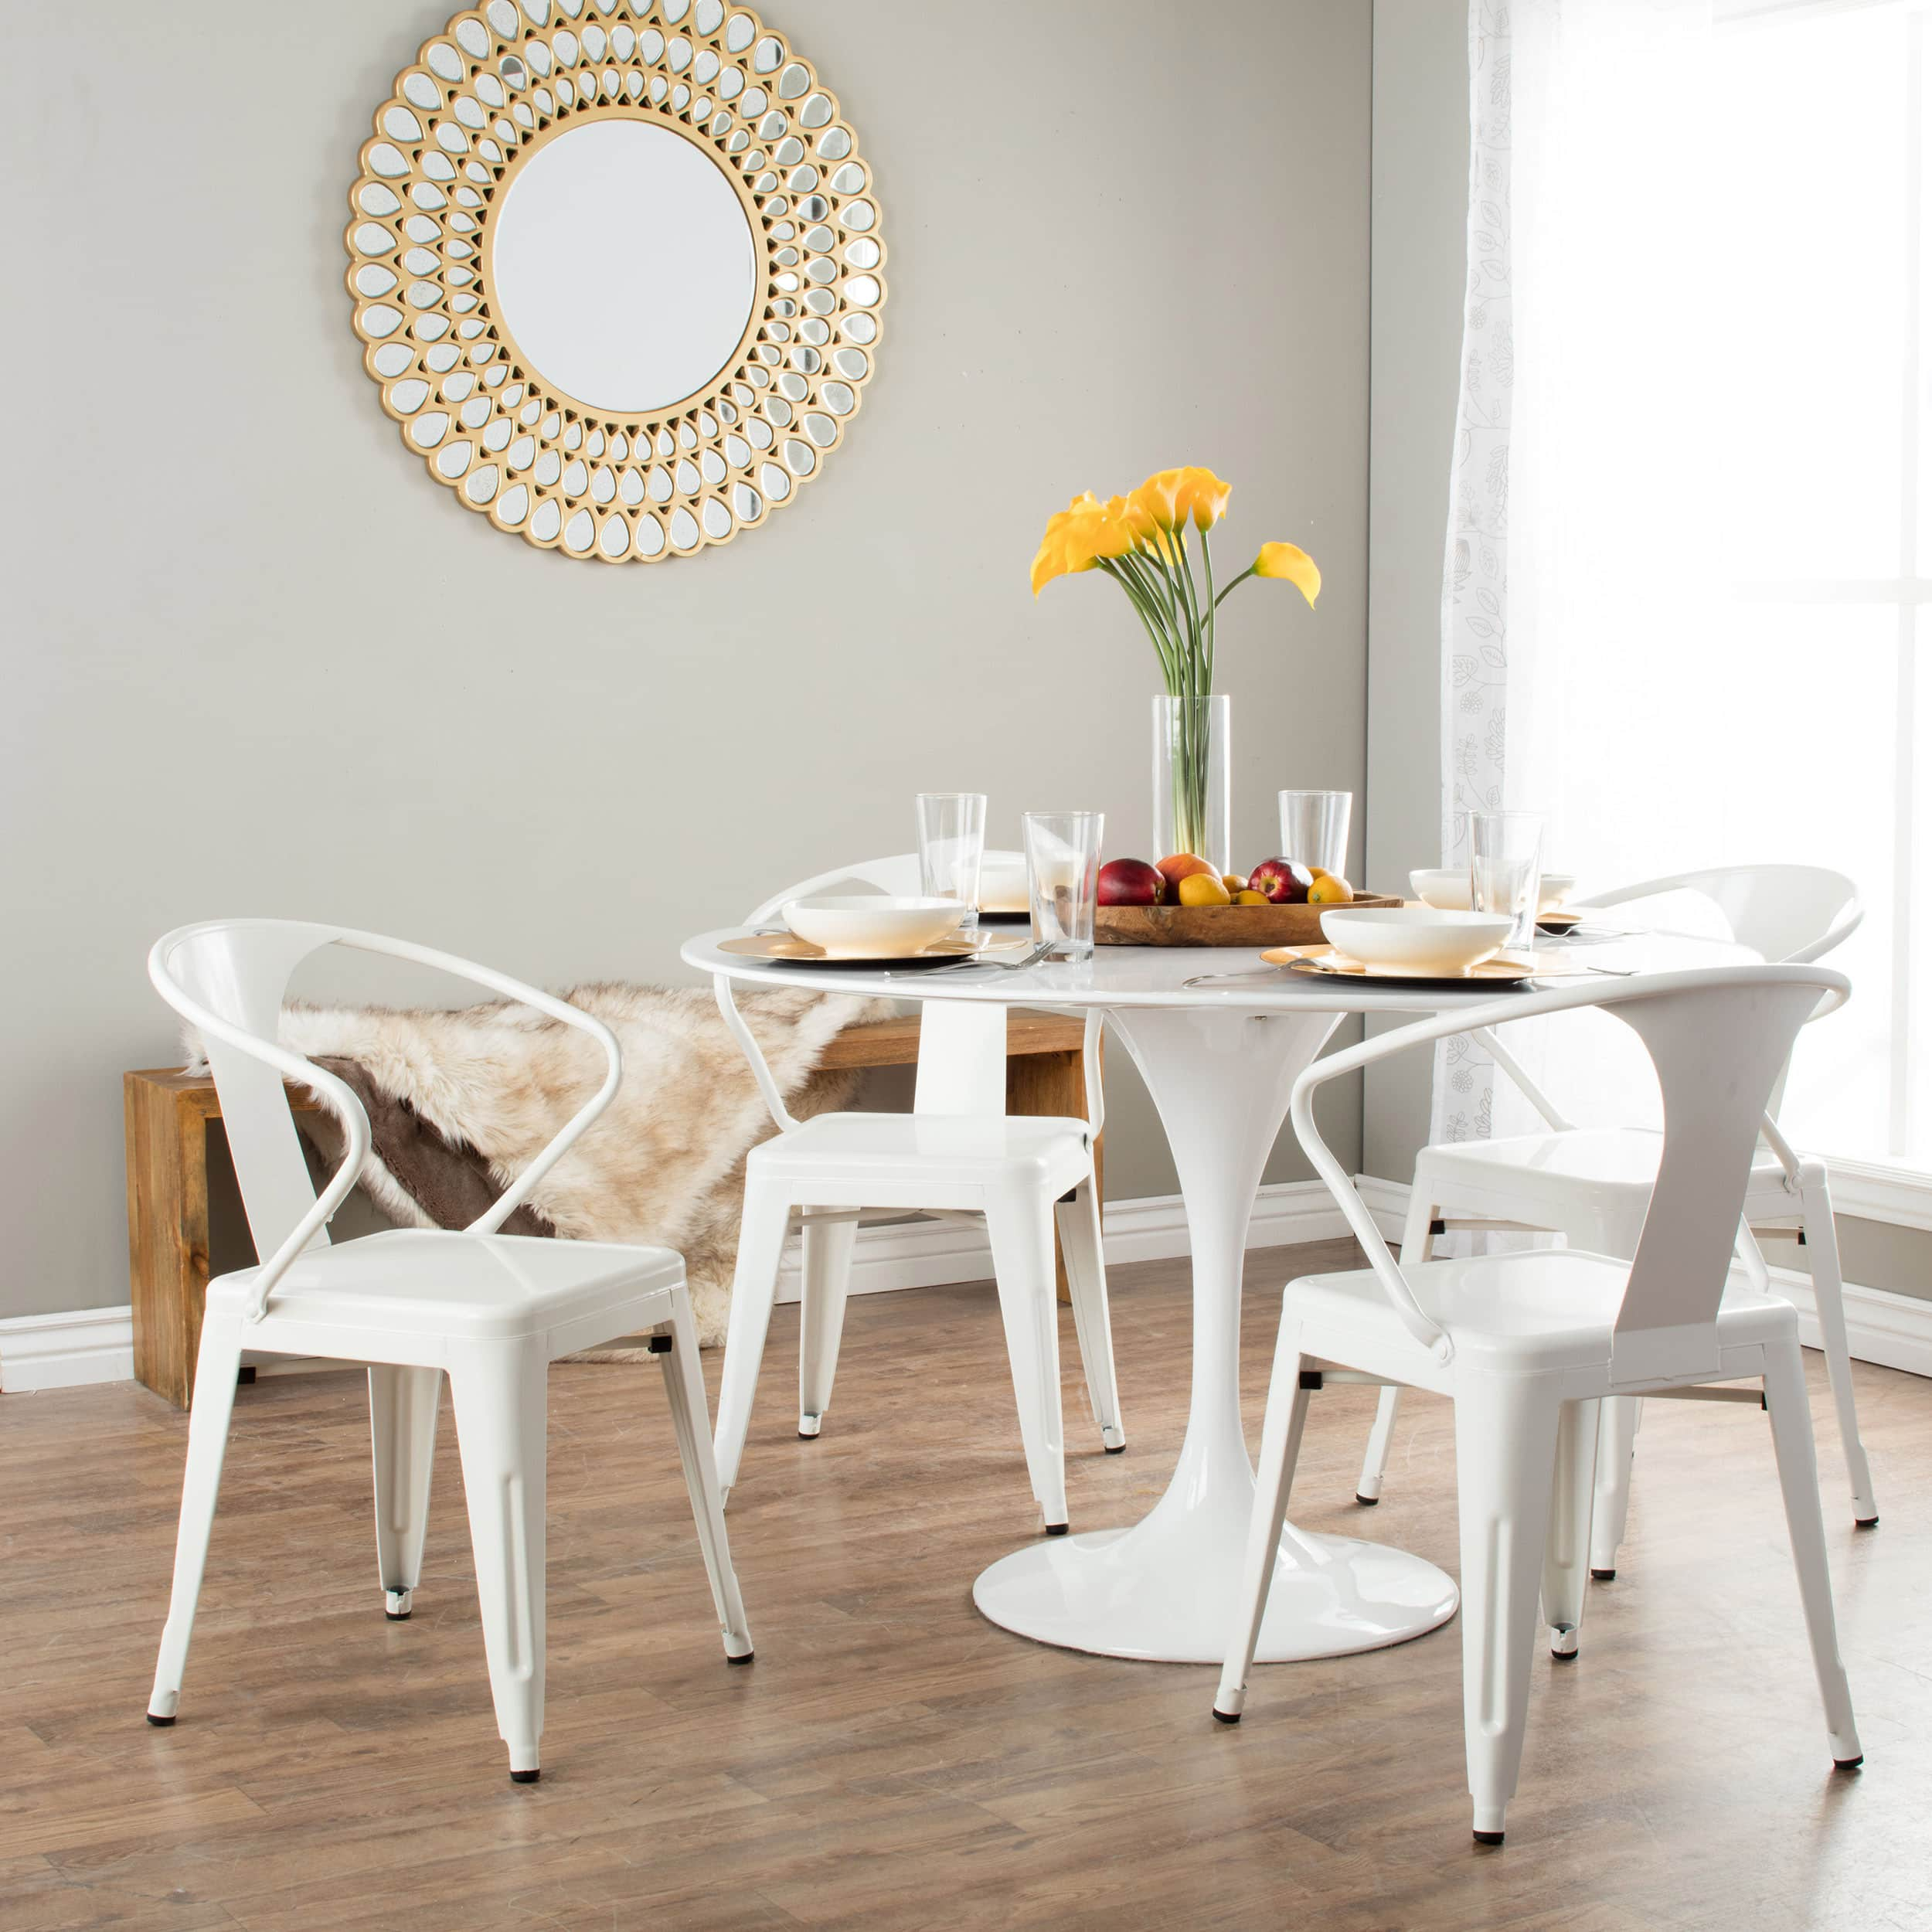 Favorite chairs from Home Goods...can't.stop.thinking ...